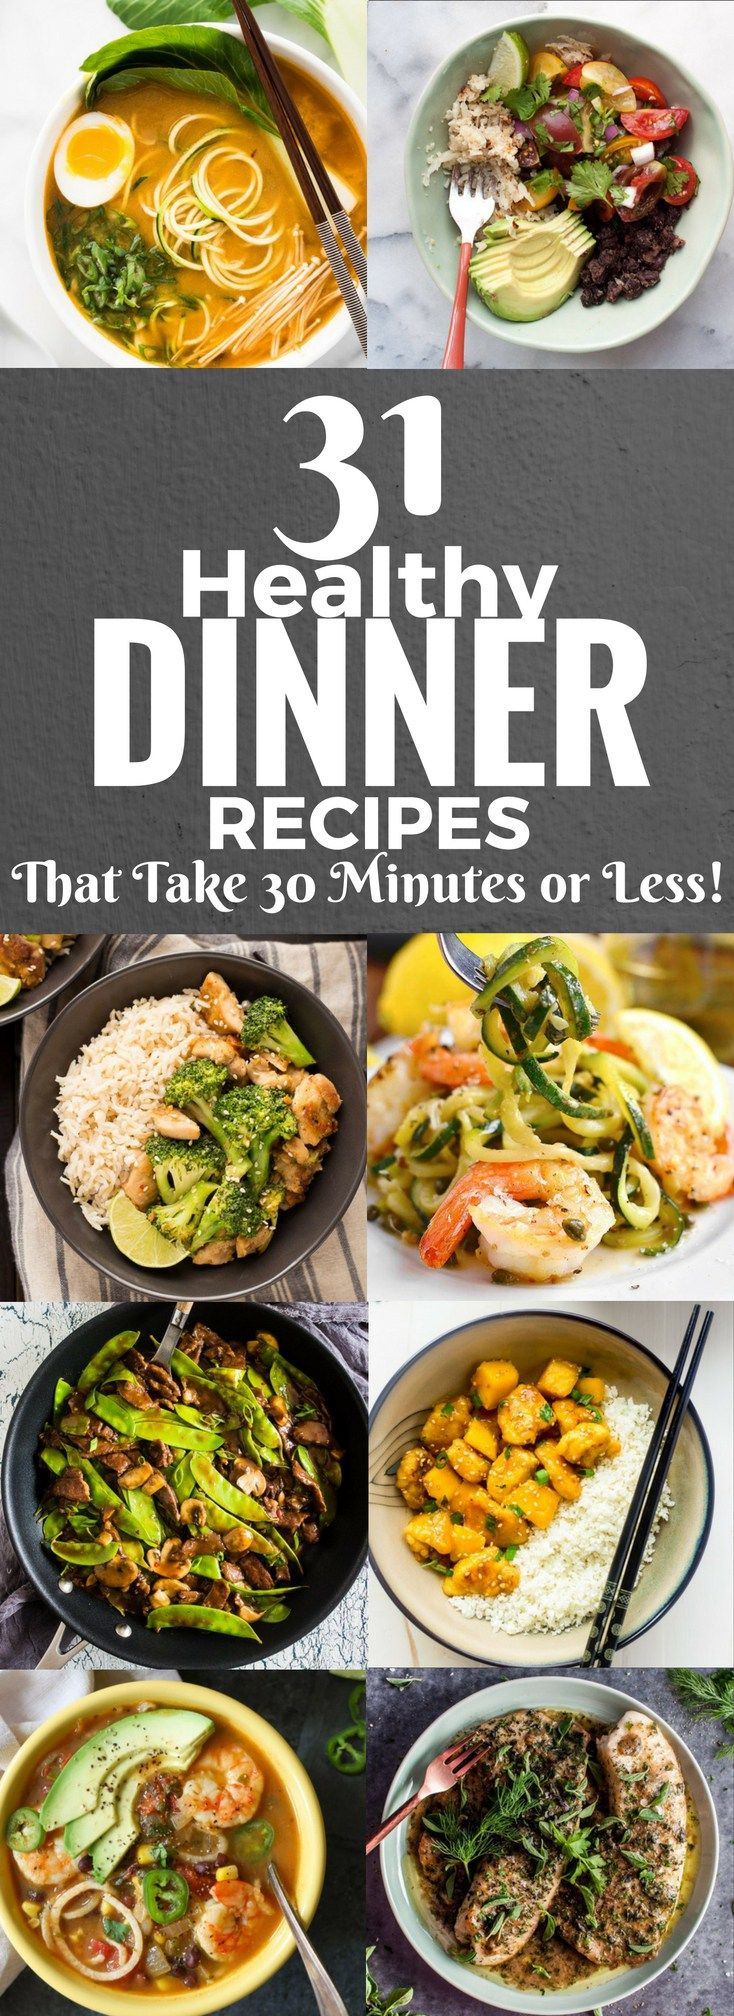 Best 25 Easy Healthy Dinners Ideas On Pinterest Easy Healthy pertaining to The Amazing  quick easy healthy recipes intended for your inspiration